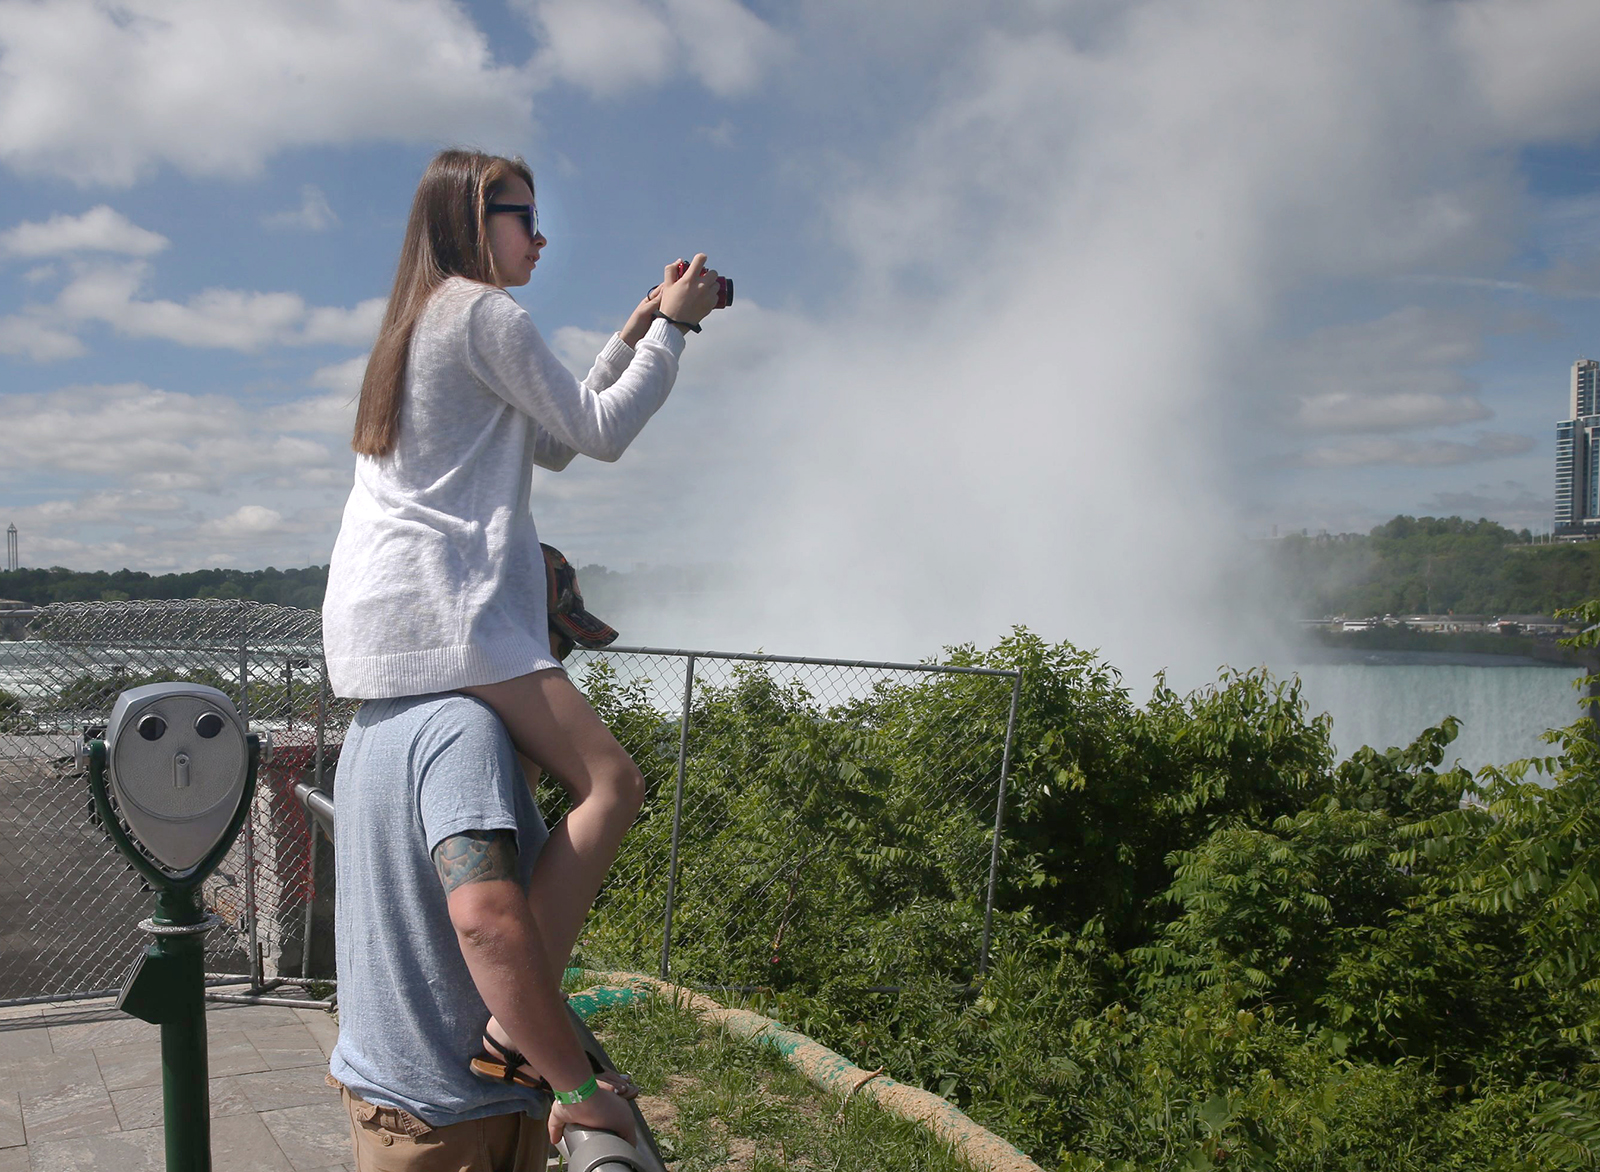 "Joslin Streck, of Oswego, N.Y. sits on the shoulders of her friend Quinn Hoko, of Blue Meadow, PA. to get a better photo at Niagara Falls State Park's Goat Island as construction fence keeps people out blocking views Terrapin Point and Horseshoe Falls, in Niagara Falls, N.Y., on Monday June 13, 2016. GPS Coordinates 43¼5'2"" N 79¼4'27"" W 550 ft Elevation, looking 226¼ W. (John Hickey/Buffalo News)"